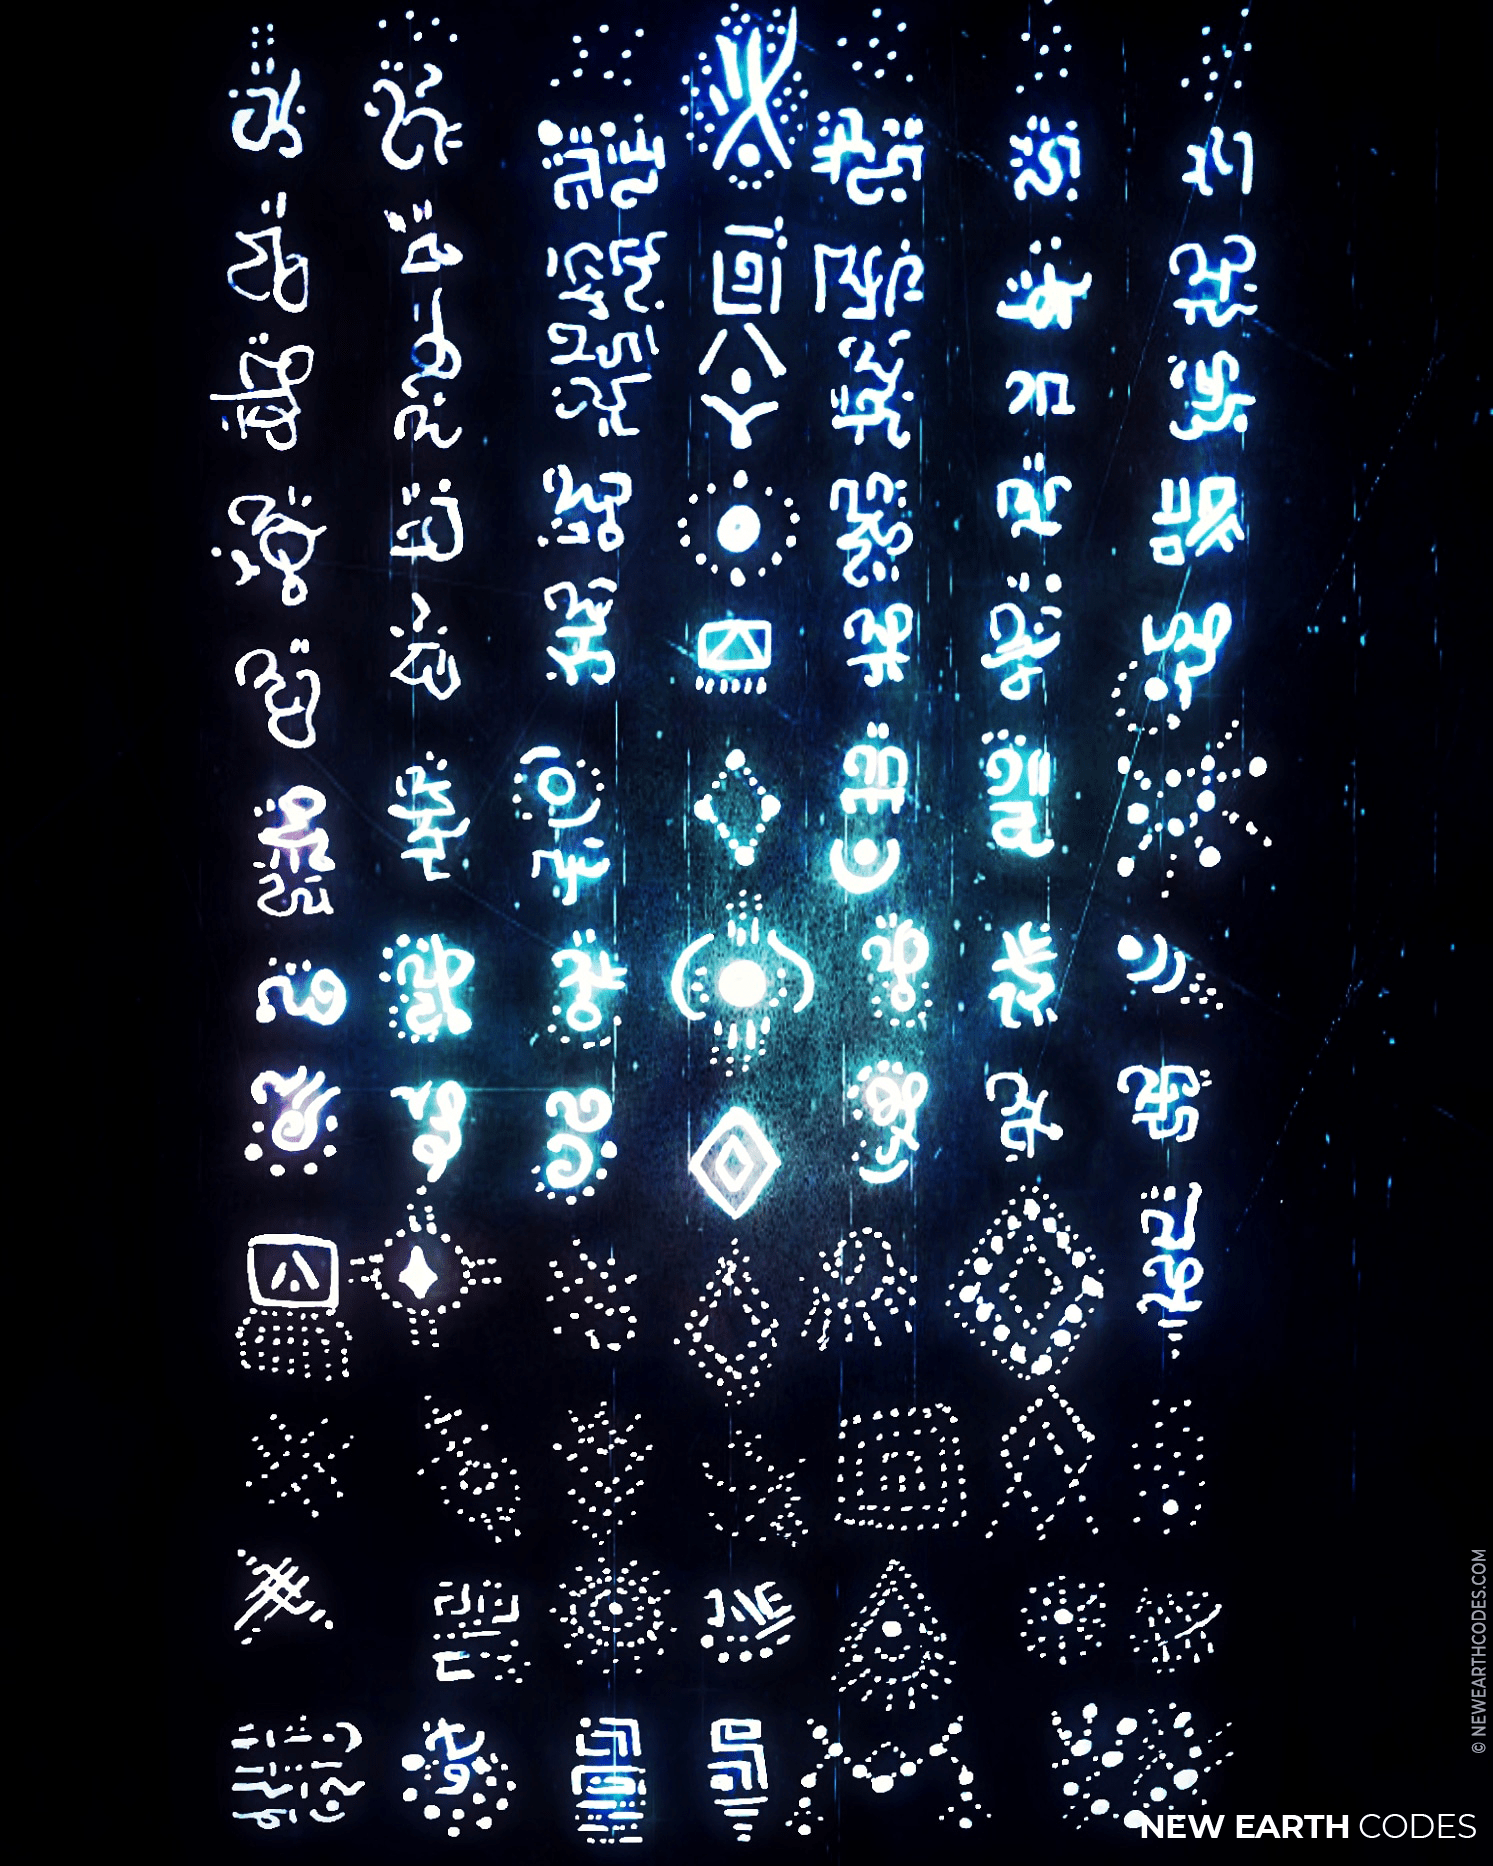 New Earth Codes Ascension Light Language 12 Strand Dna Activation Crystalline Dna Activation Lightbody Ancient Scripts Coding Languages Souls Inspiration